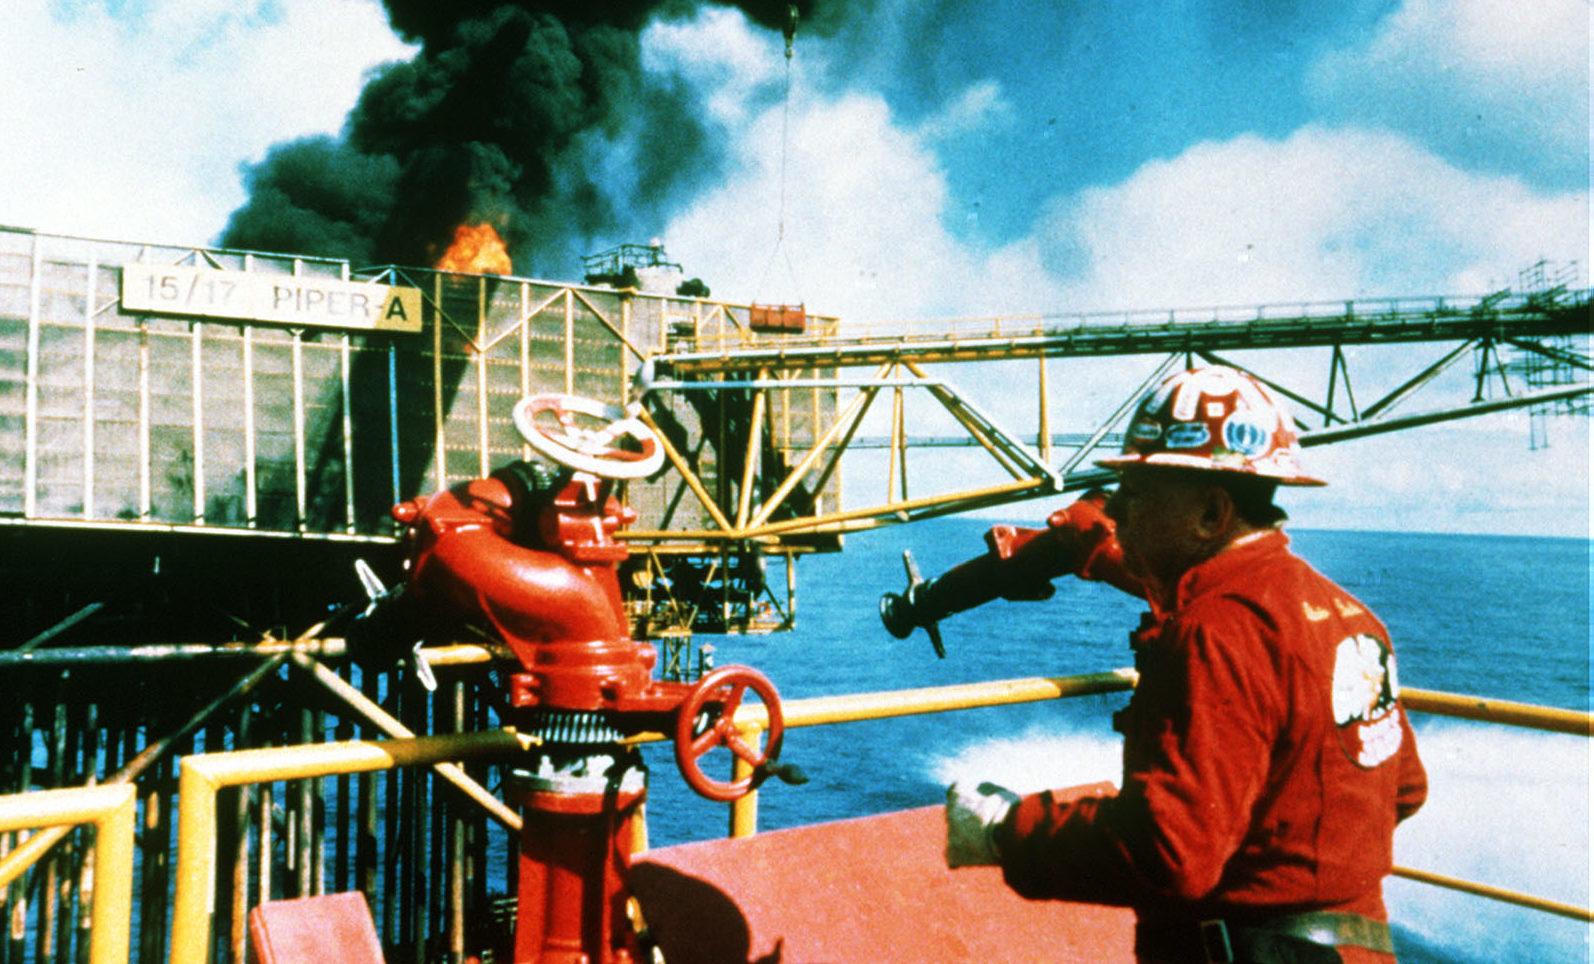 Texan oil well firefighter Red Adair orchestrated the operation to 'kill' Piper Alpha's burning wells.